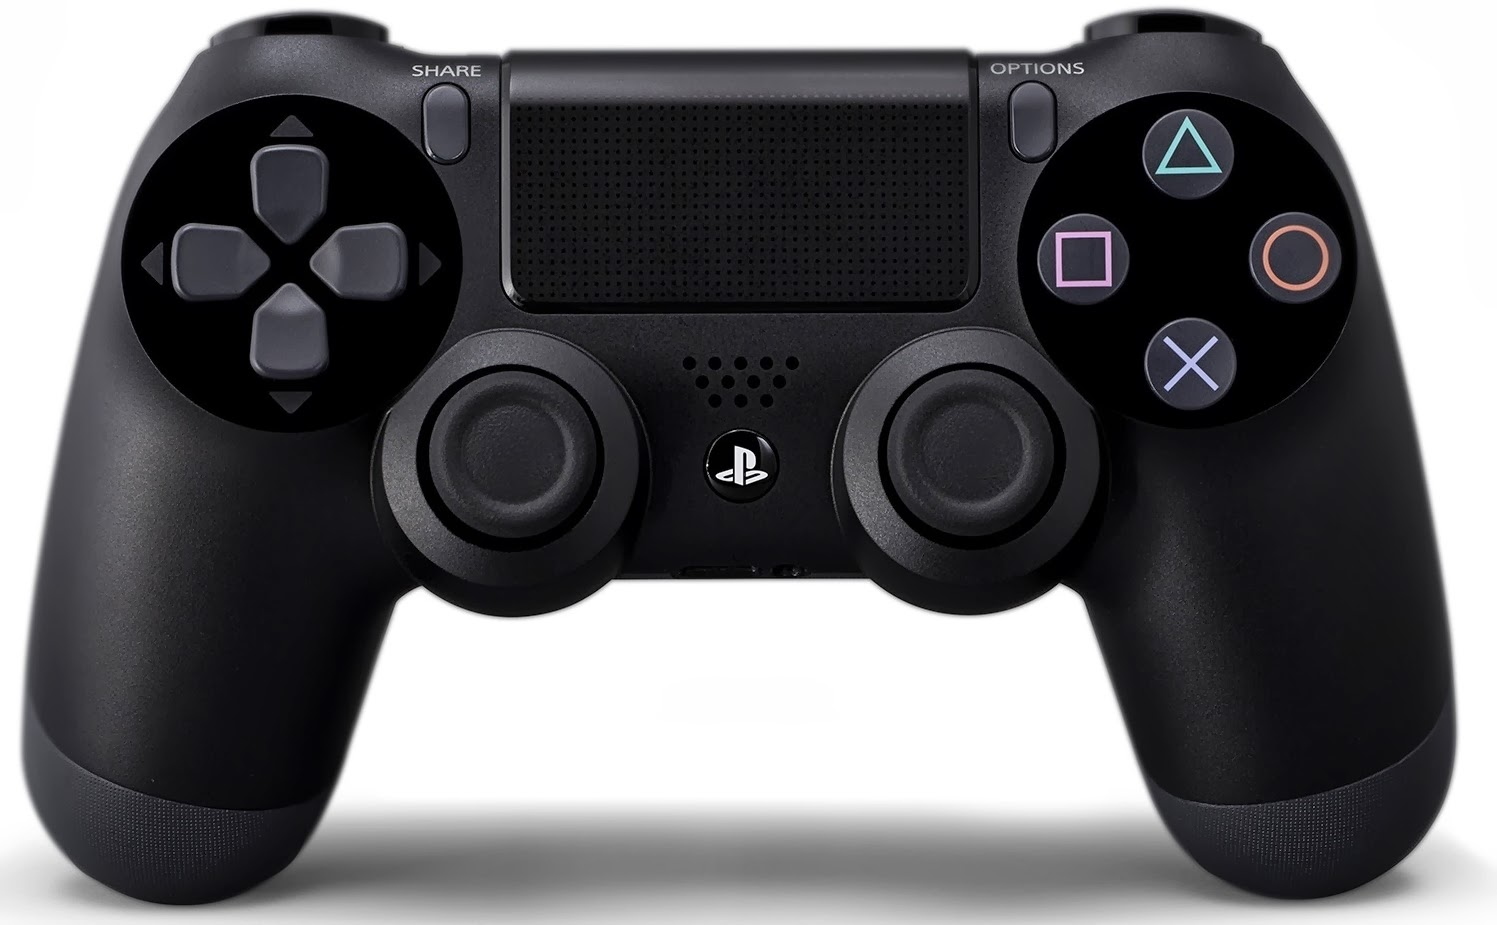 PS 4 DualStock 4 Controller Review